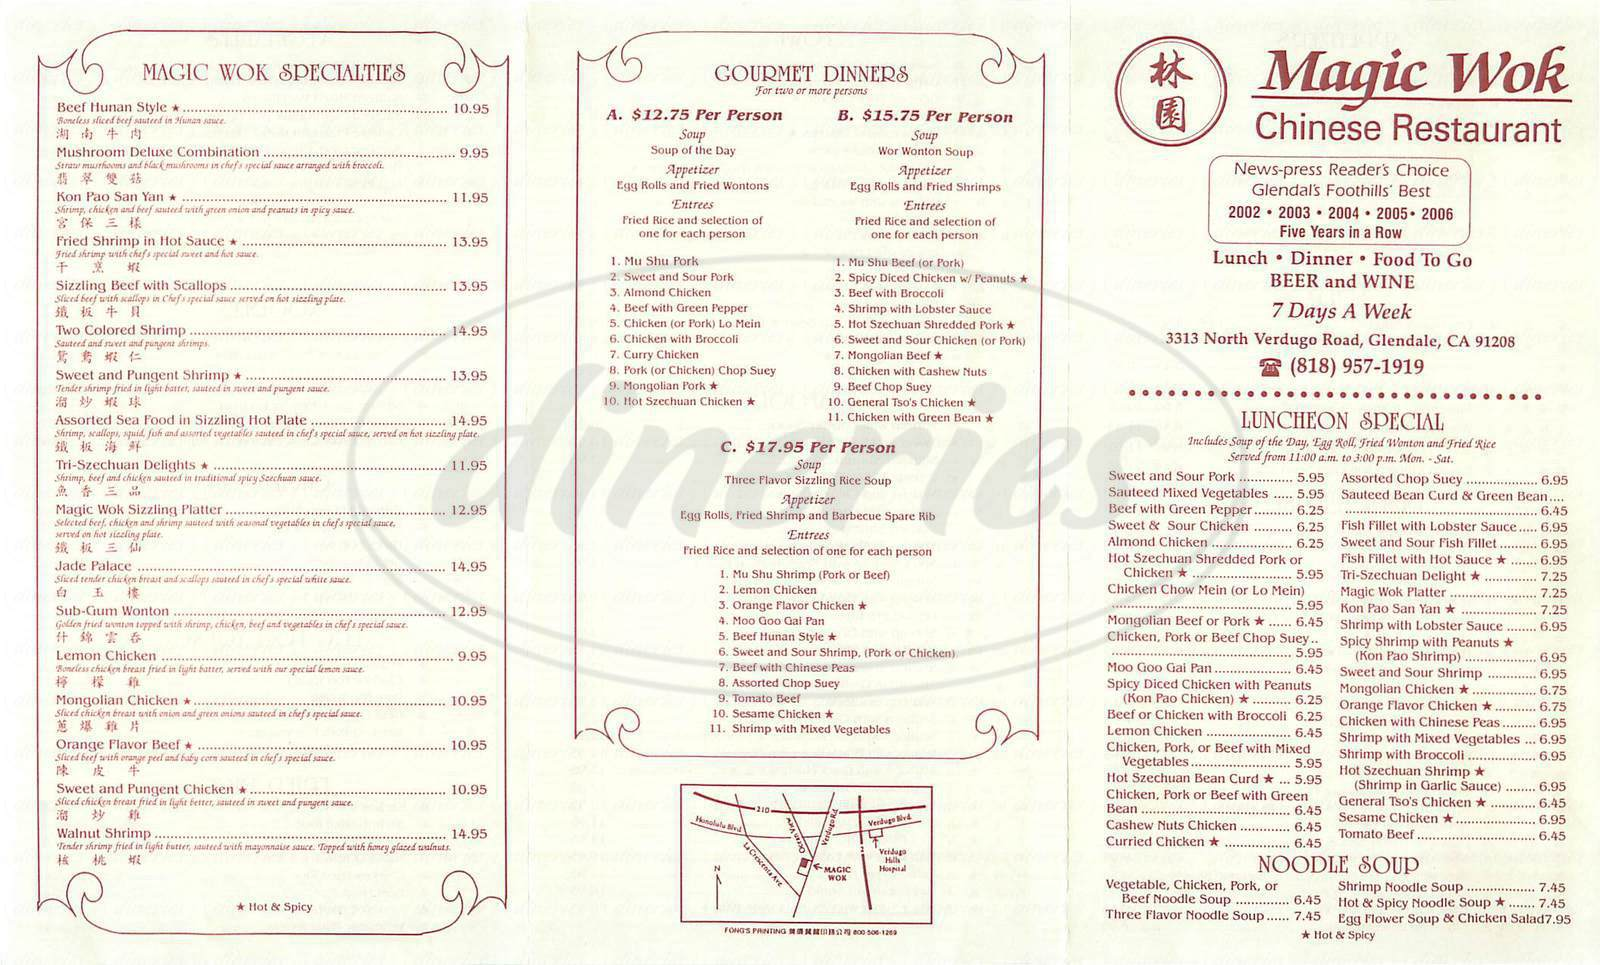 menu for Magic Wok Restaurant